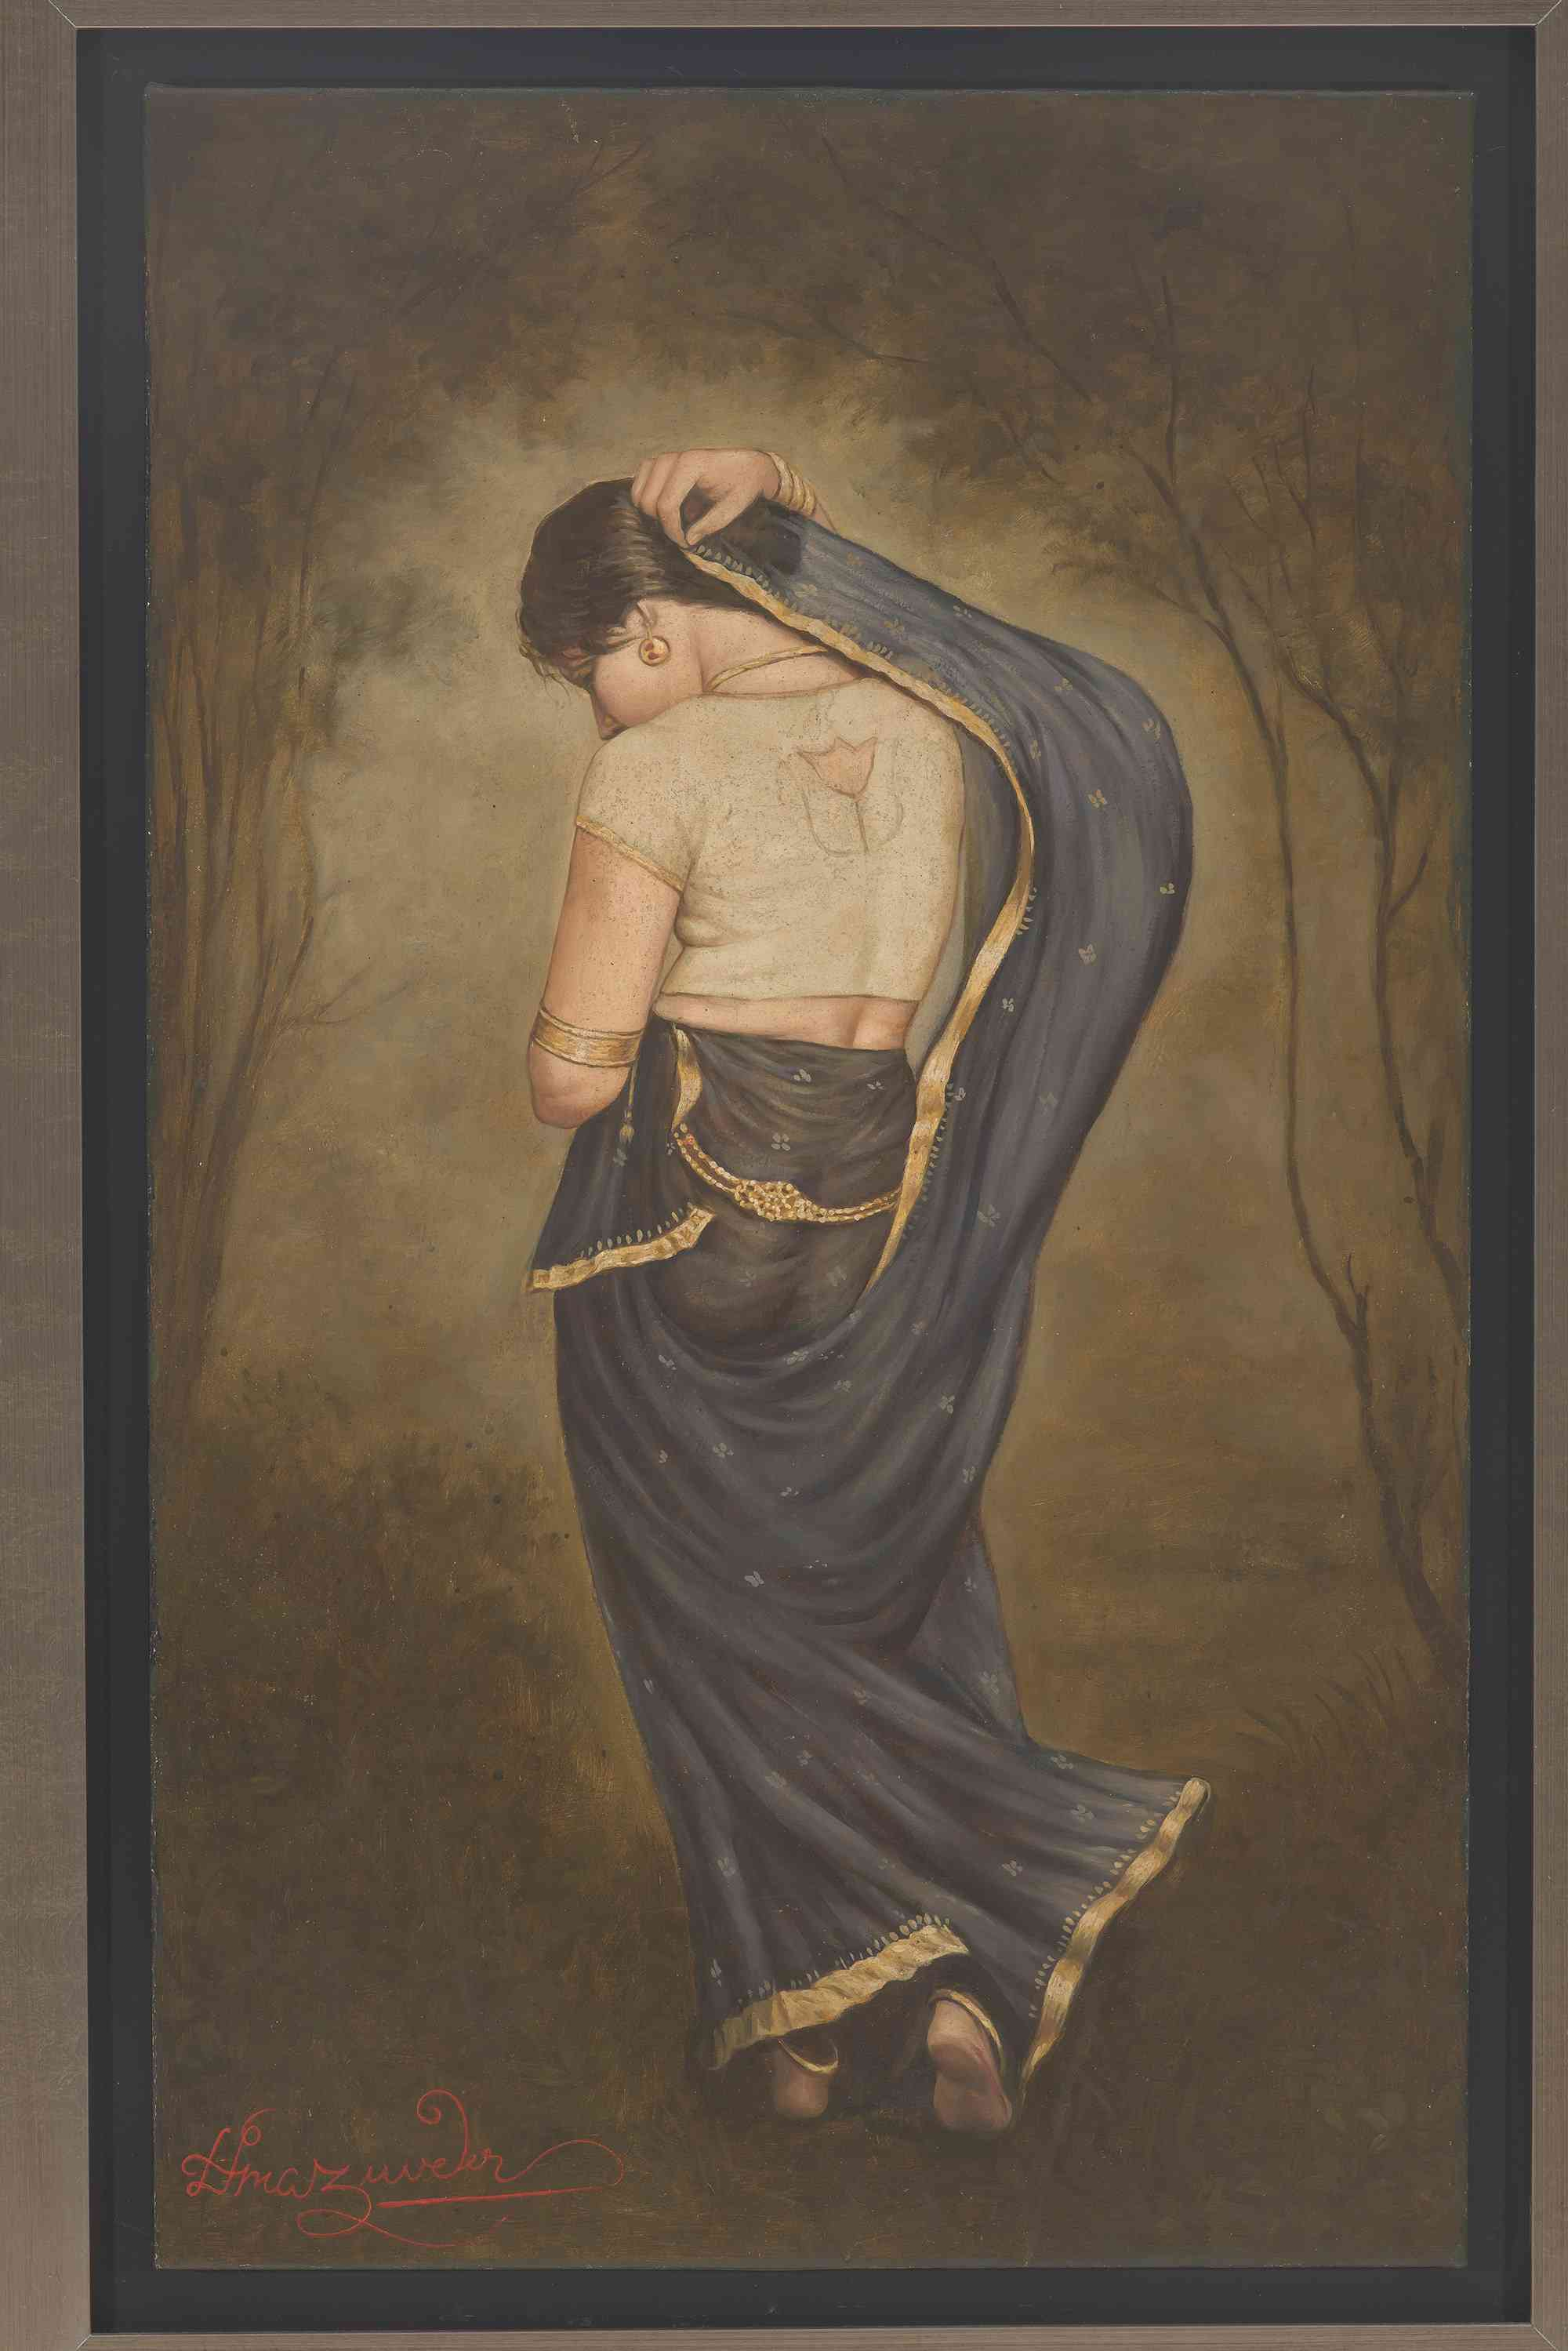 'Blue Swari', 81x49.3 cm, oil on canvas. Image courtesy: Kumar Collection.